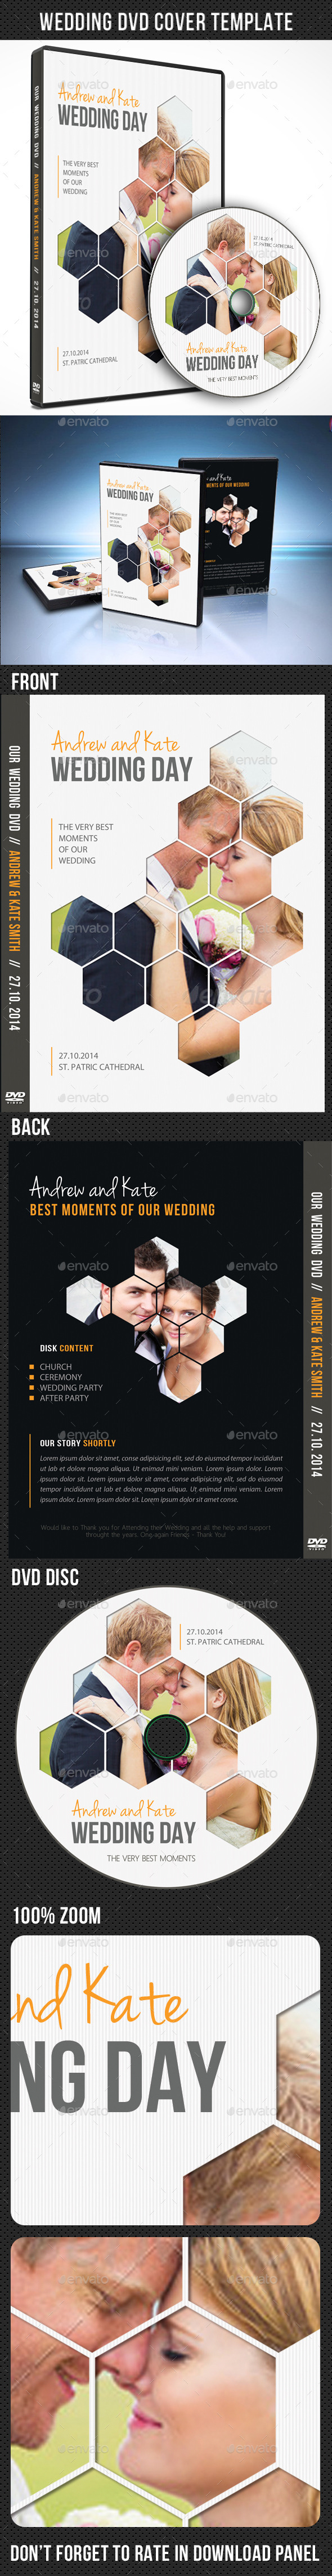 GraphicRiver Wedding DVD Cover Template 06 9013772